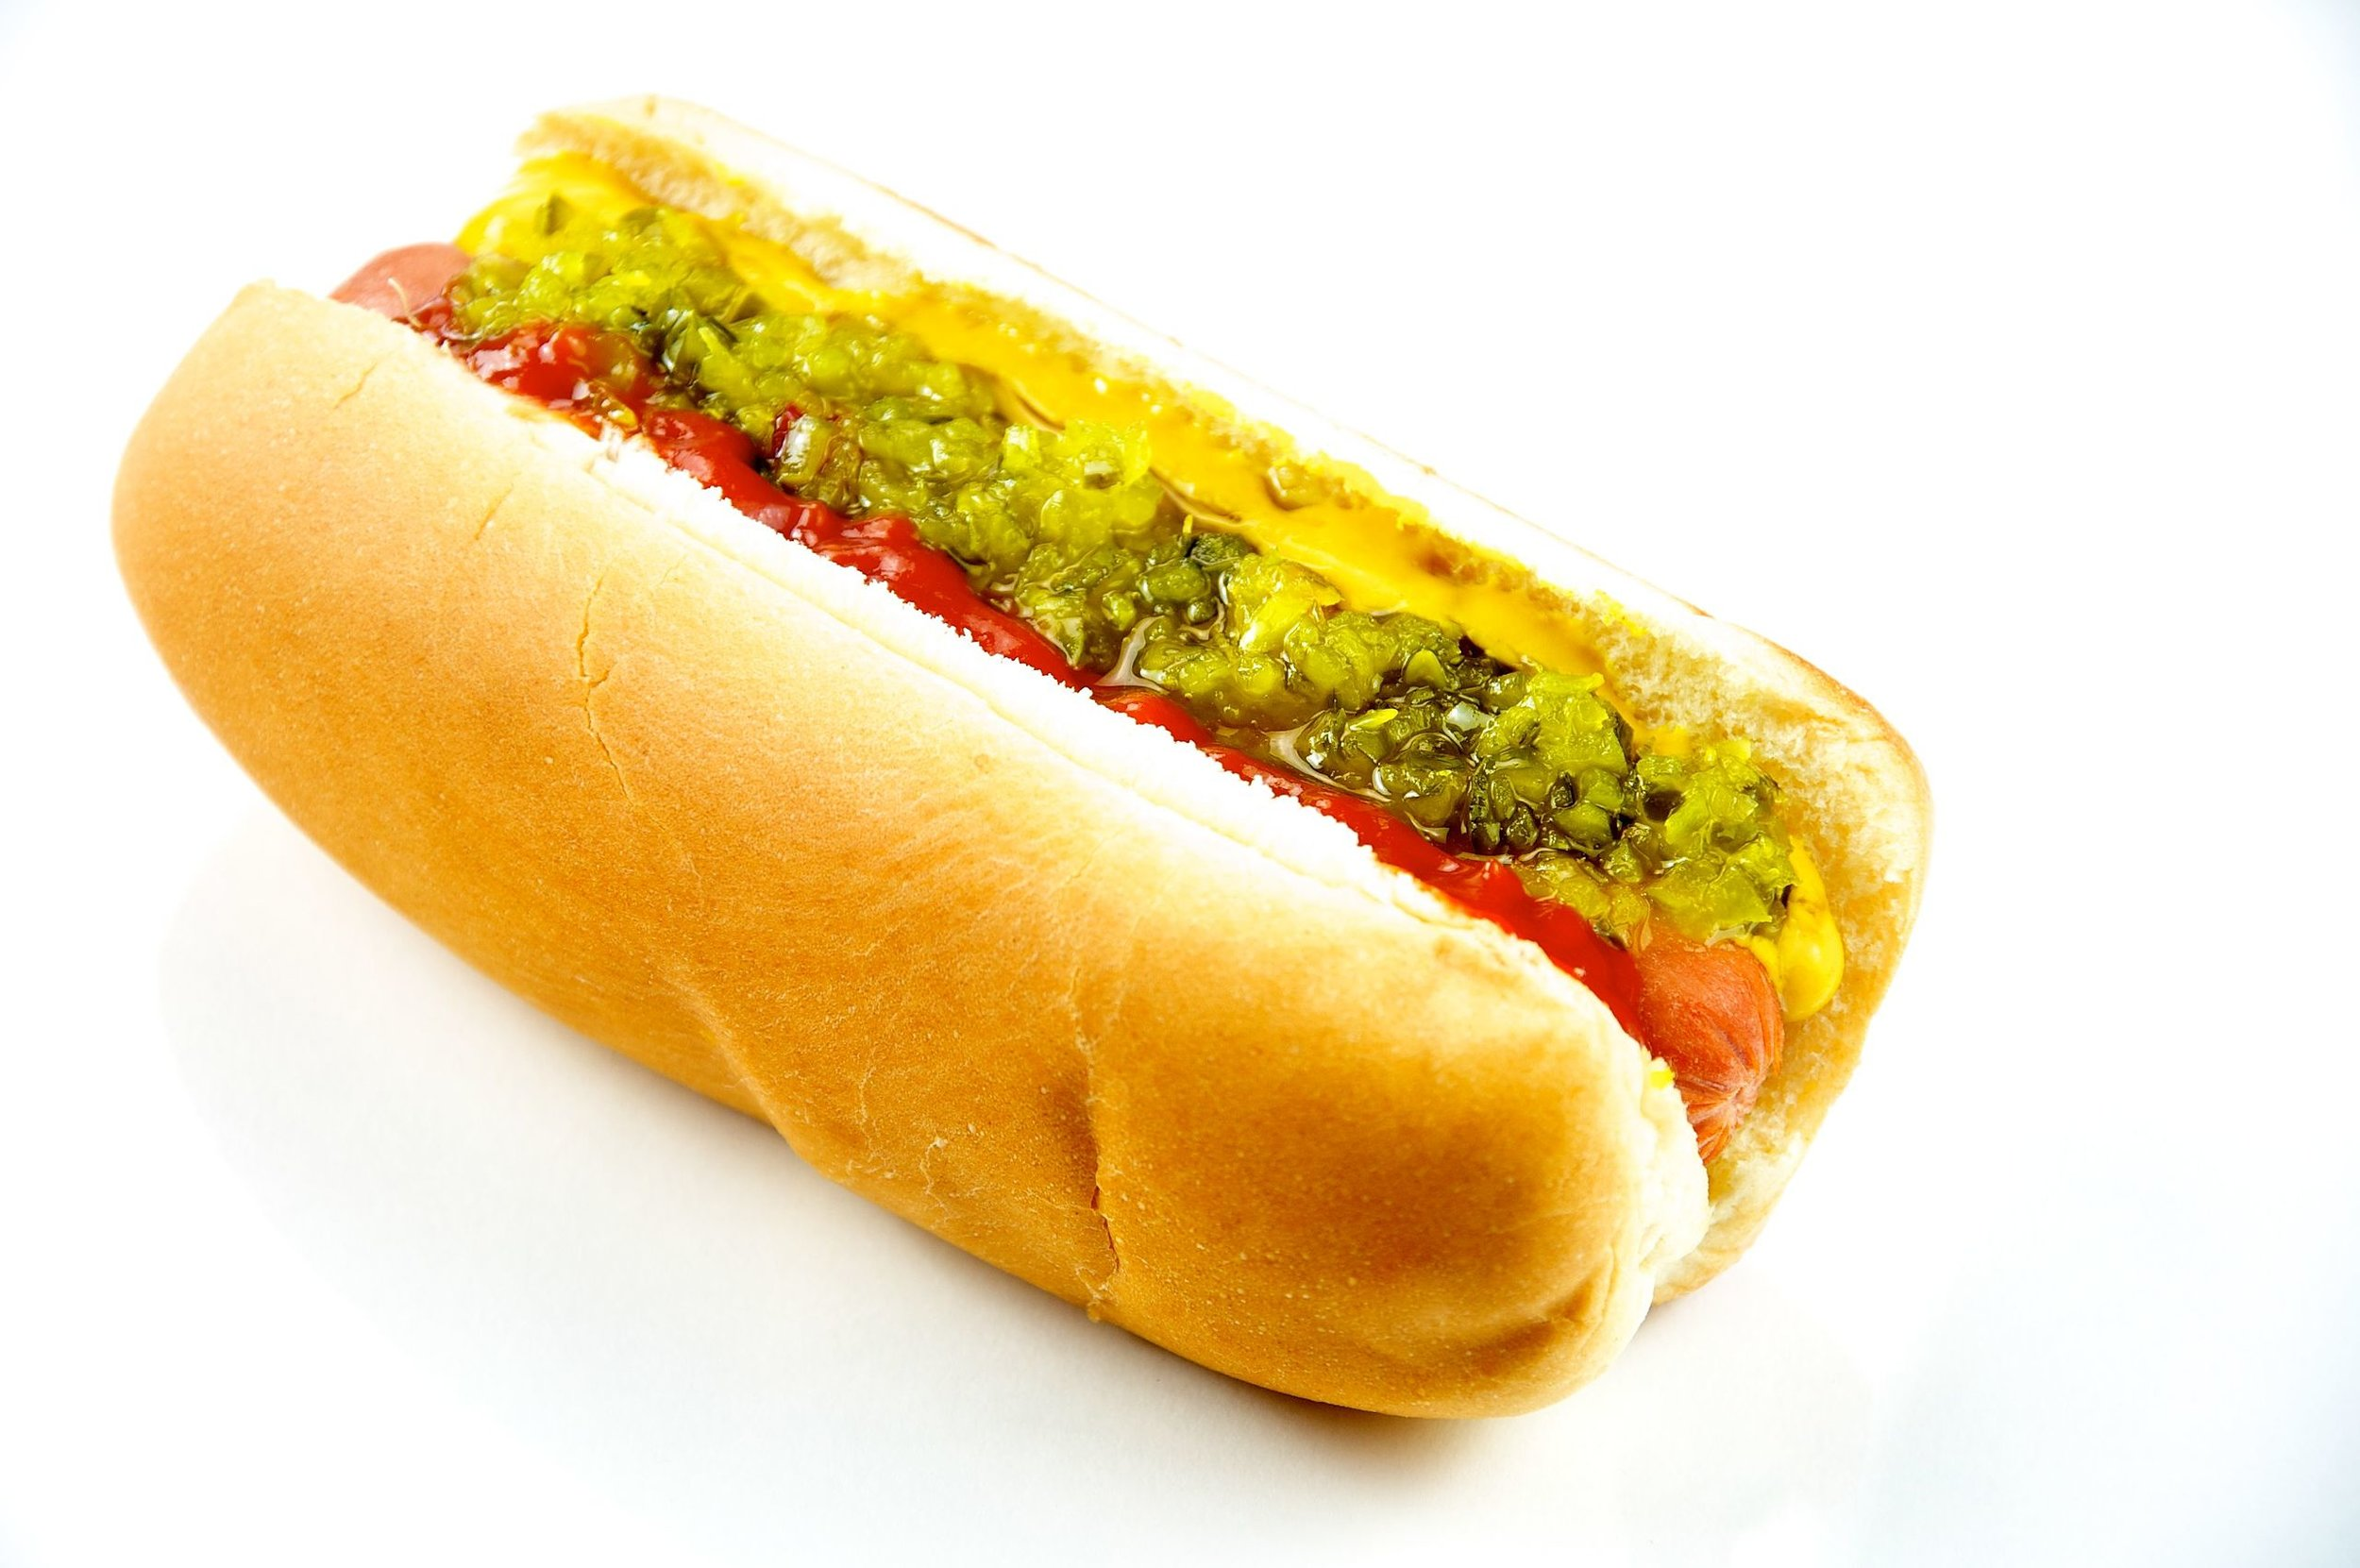 A cooked hot dog in a bun with mustard, relish, and ketchup Hot Dog Evan Swigart from Chicago, USA - Hot